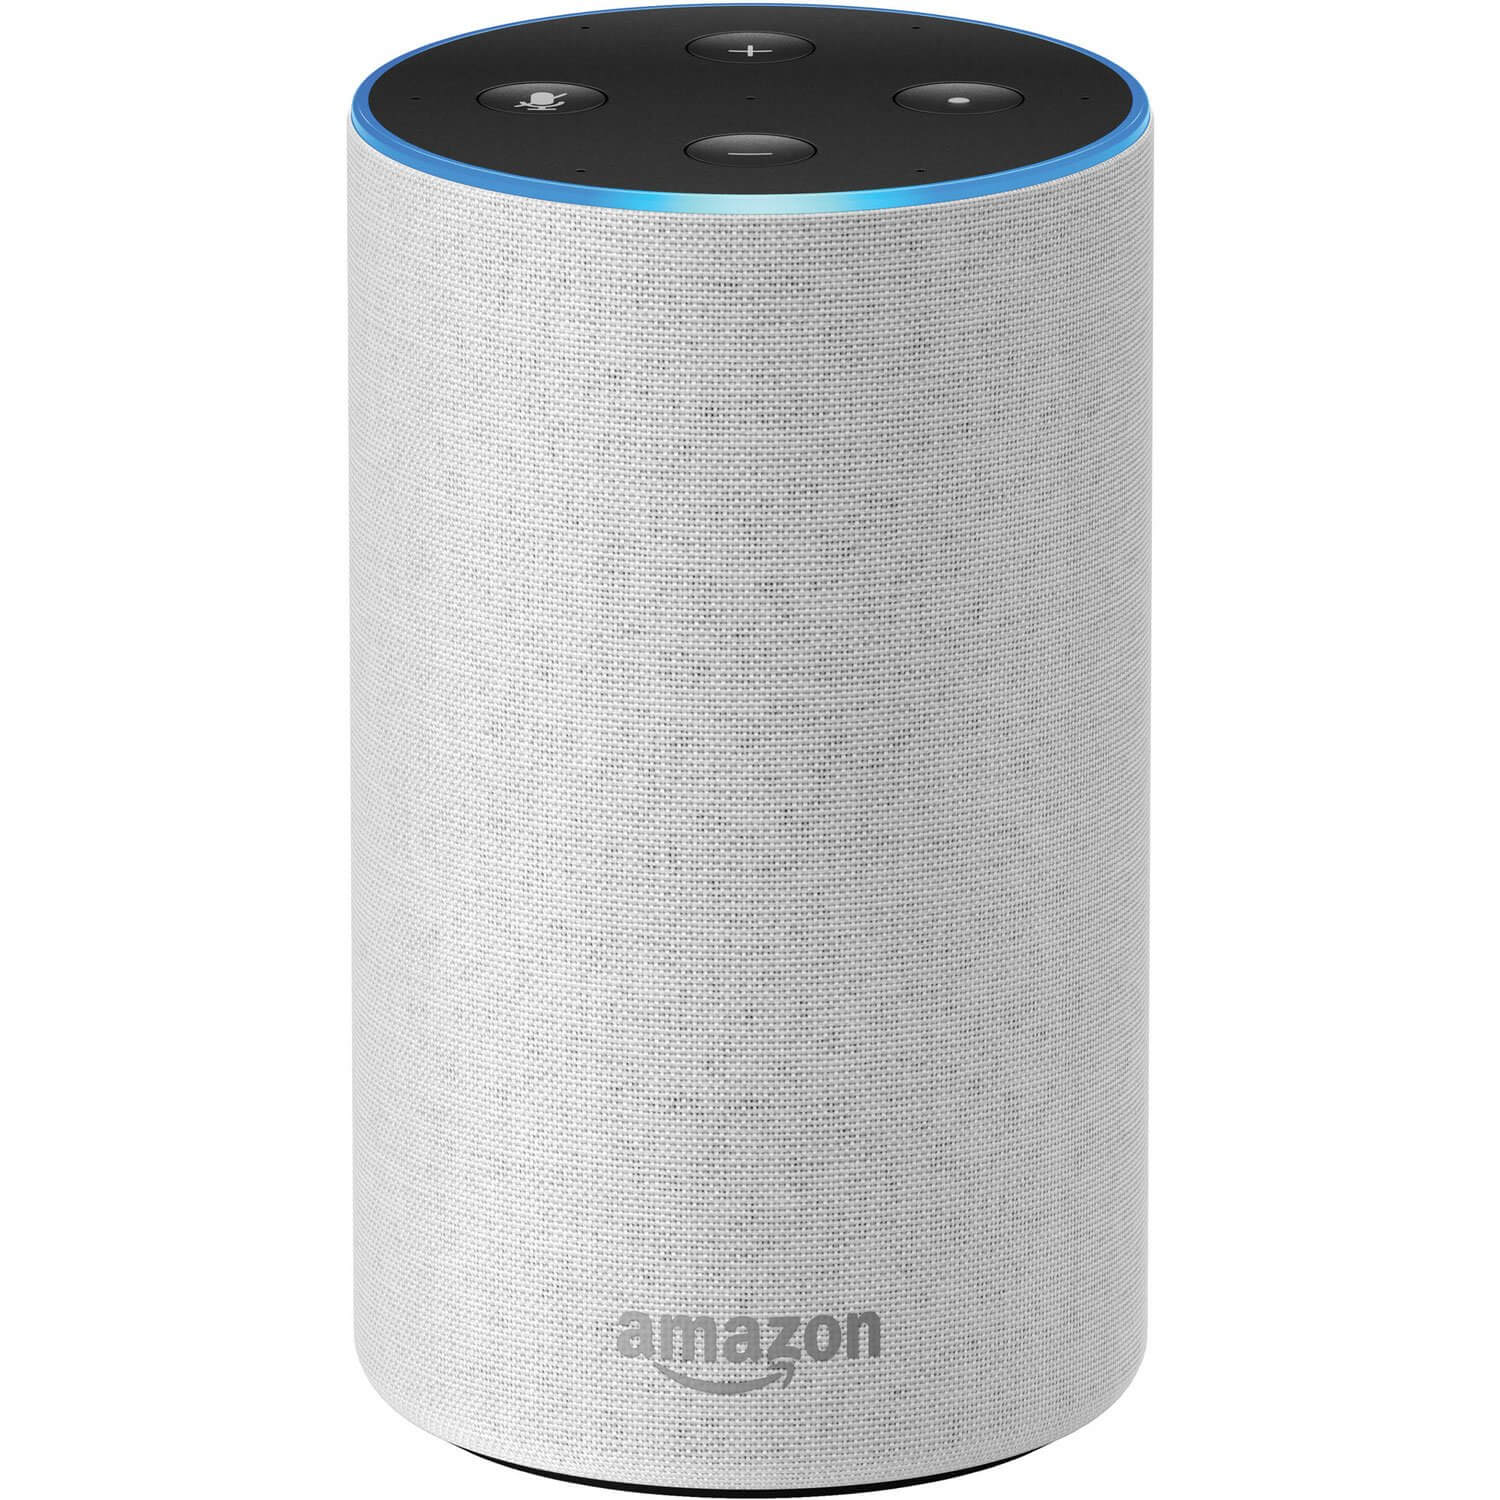 amazon-Echo-2nd-Generation-Smart-speaker-with-Alexa-Dolby-processing-best-gift-tech-geek-under-100